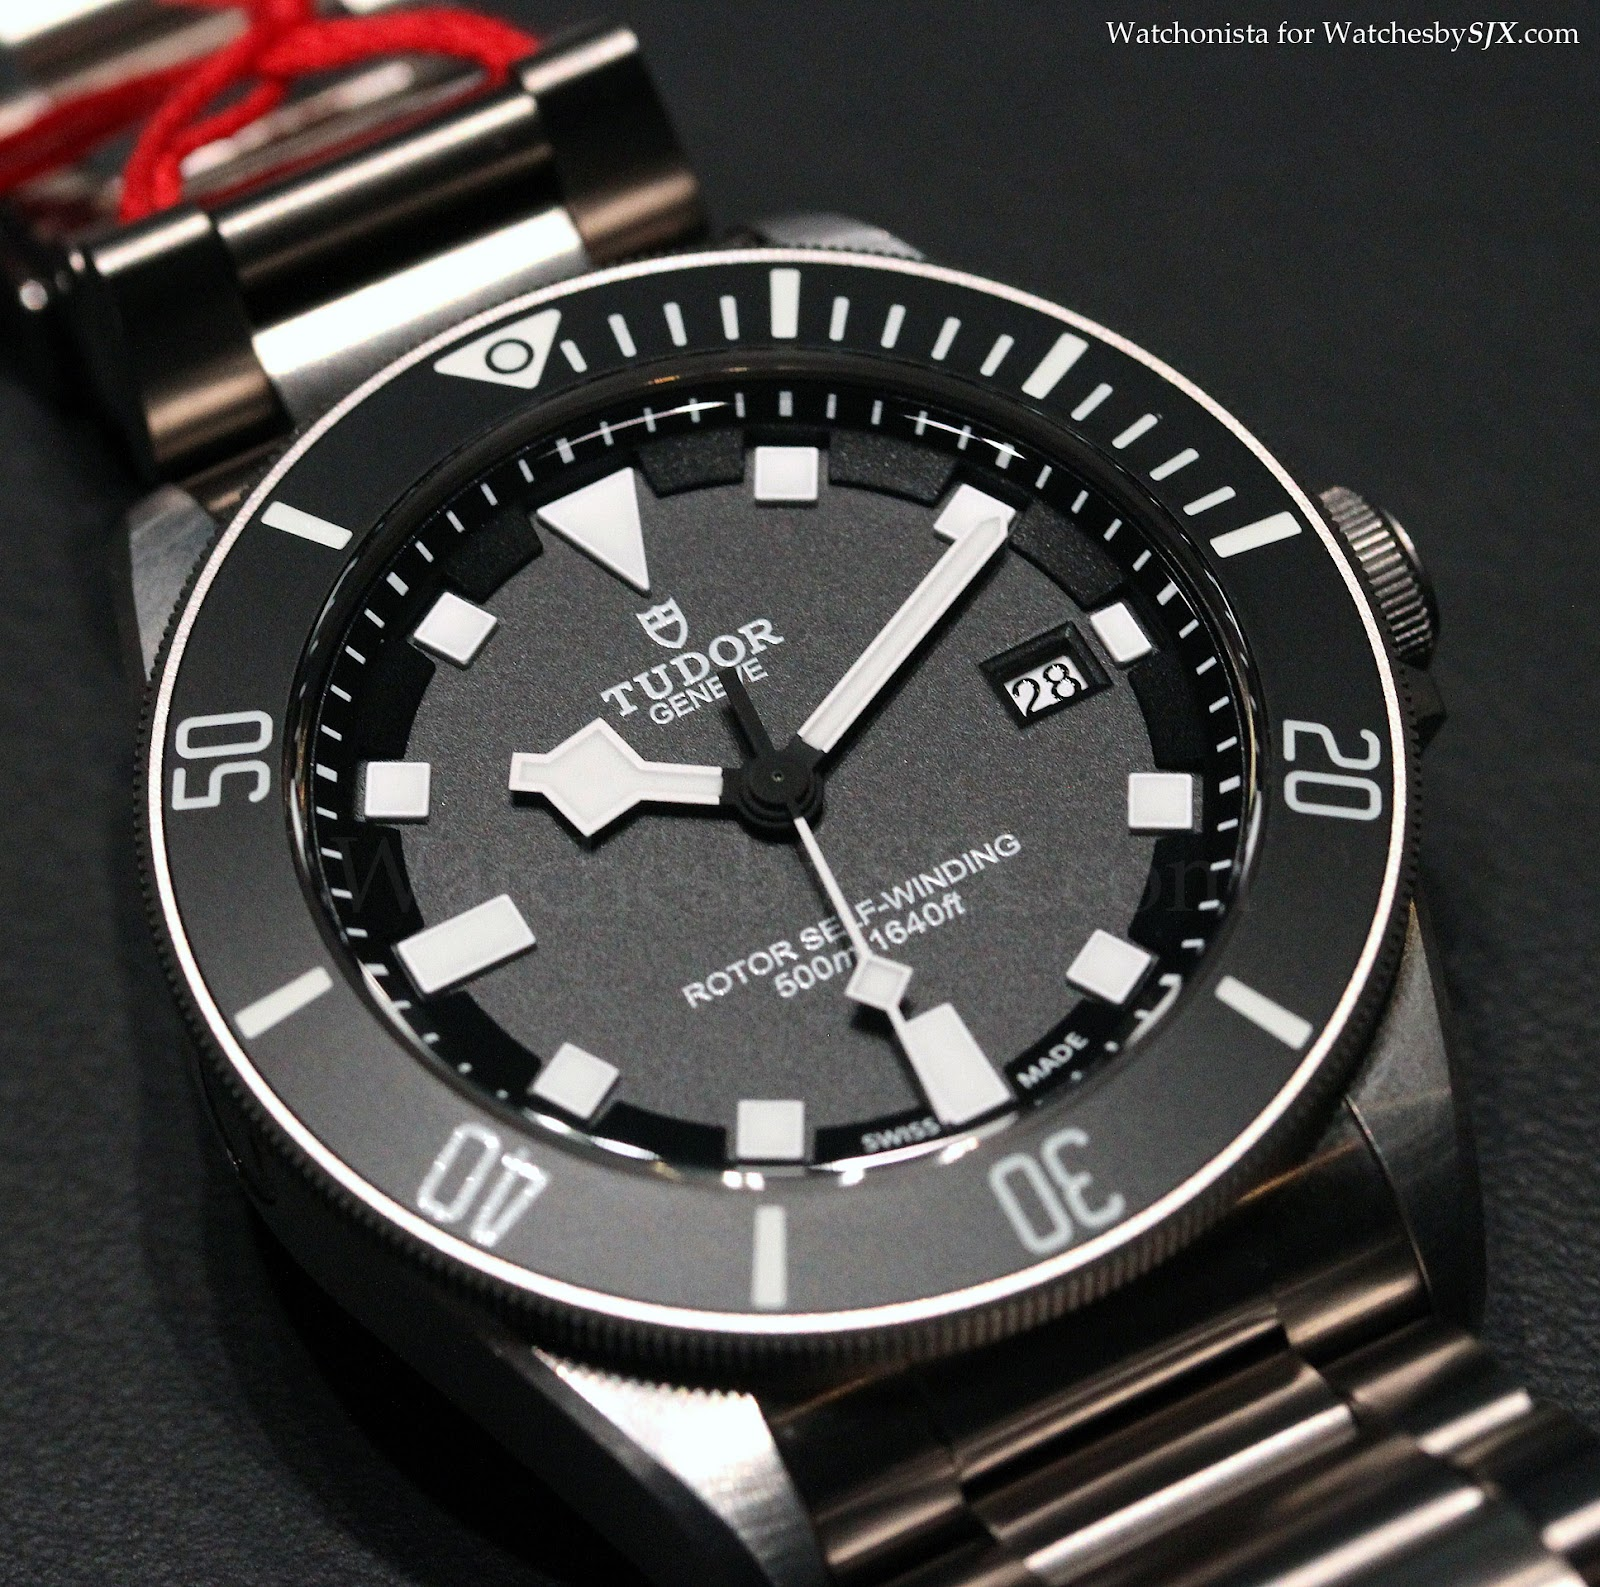 Watches by sjx tudor pelagos 500 m diver live photos - Tudor dive watch price ...